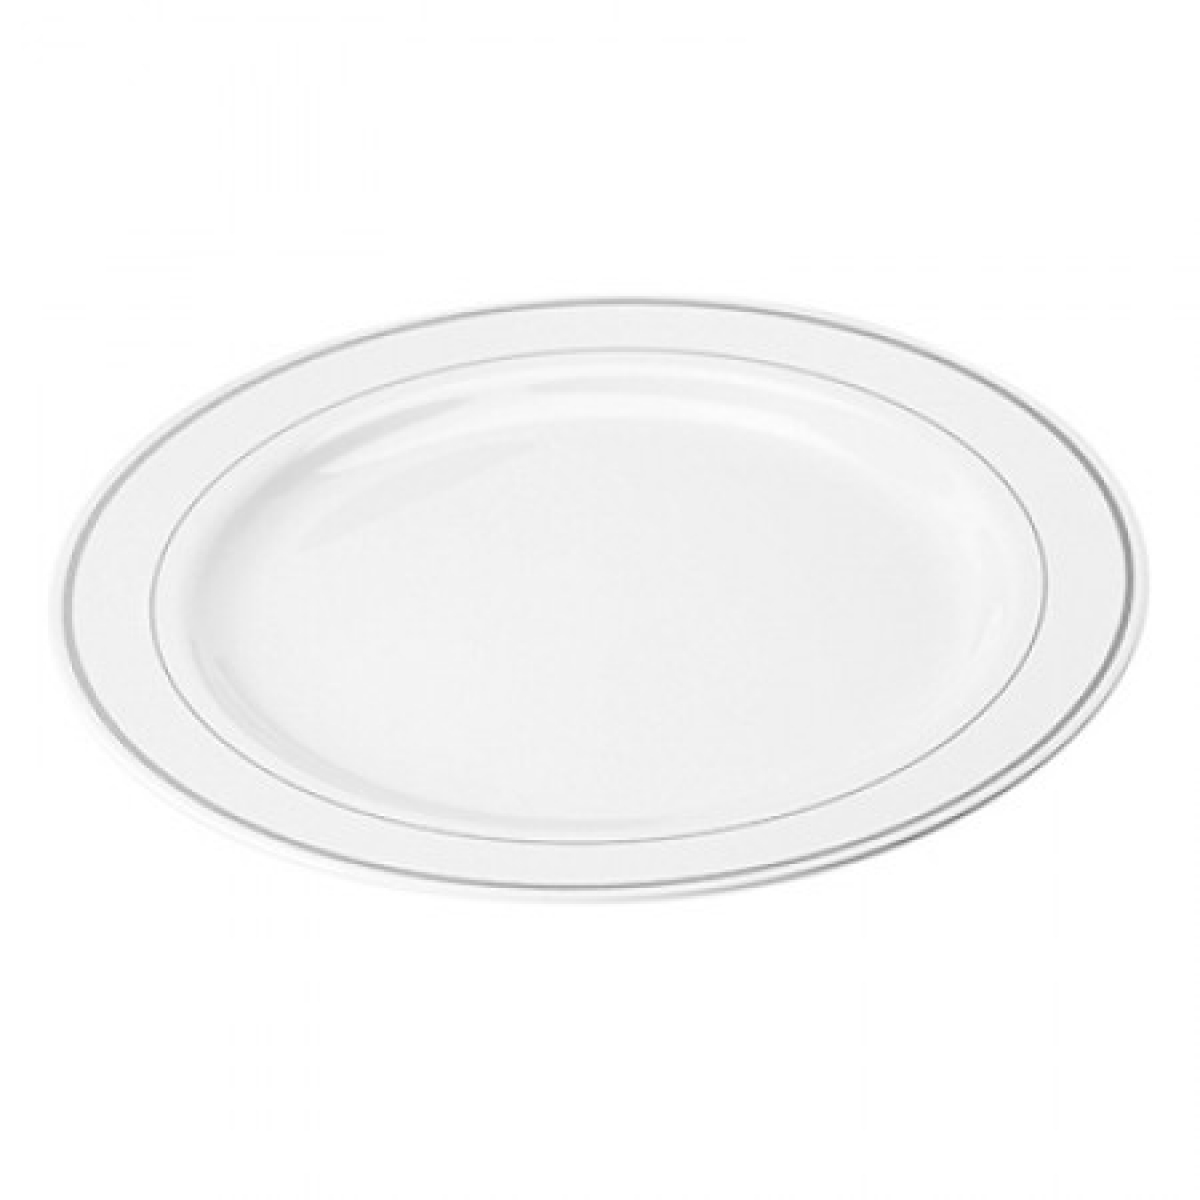 round plate with ring (silver) 19